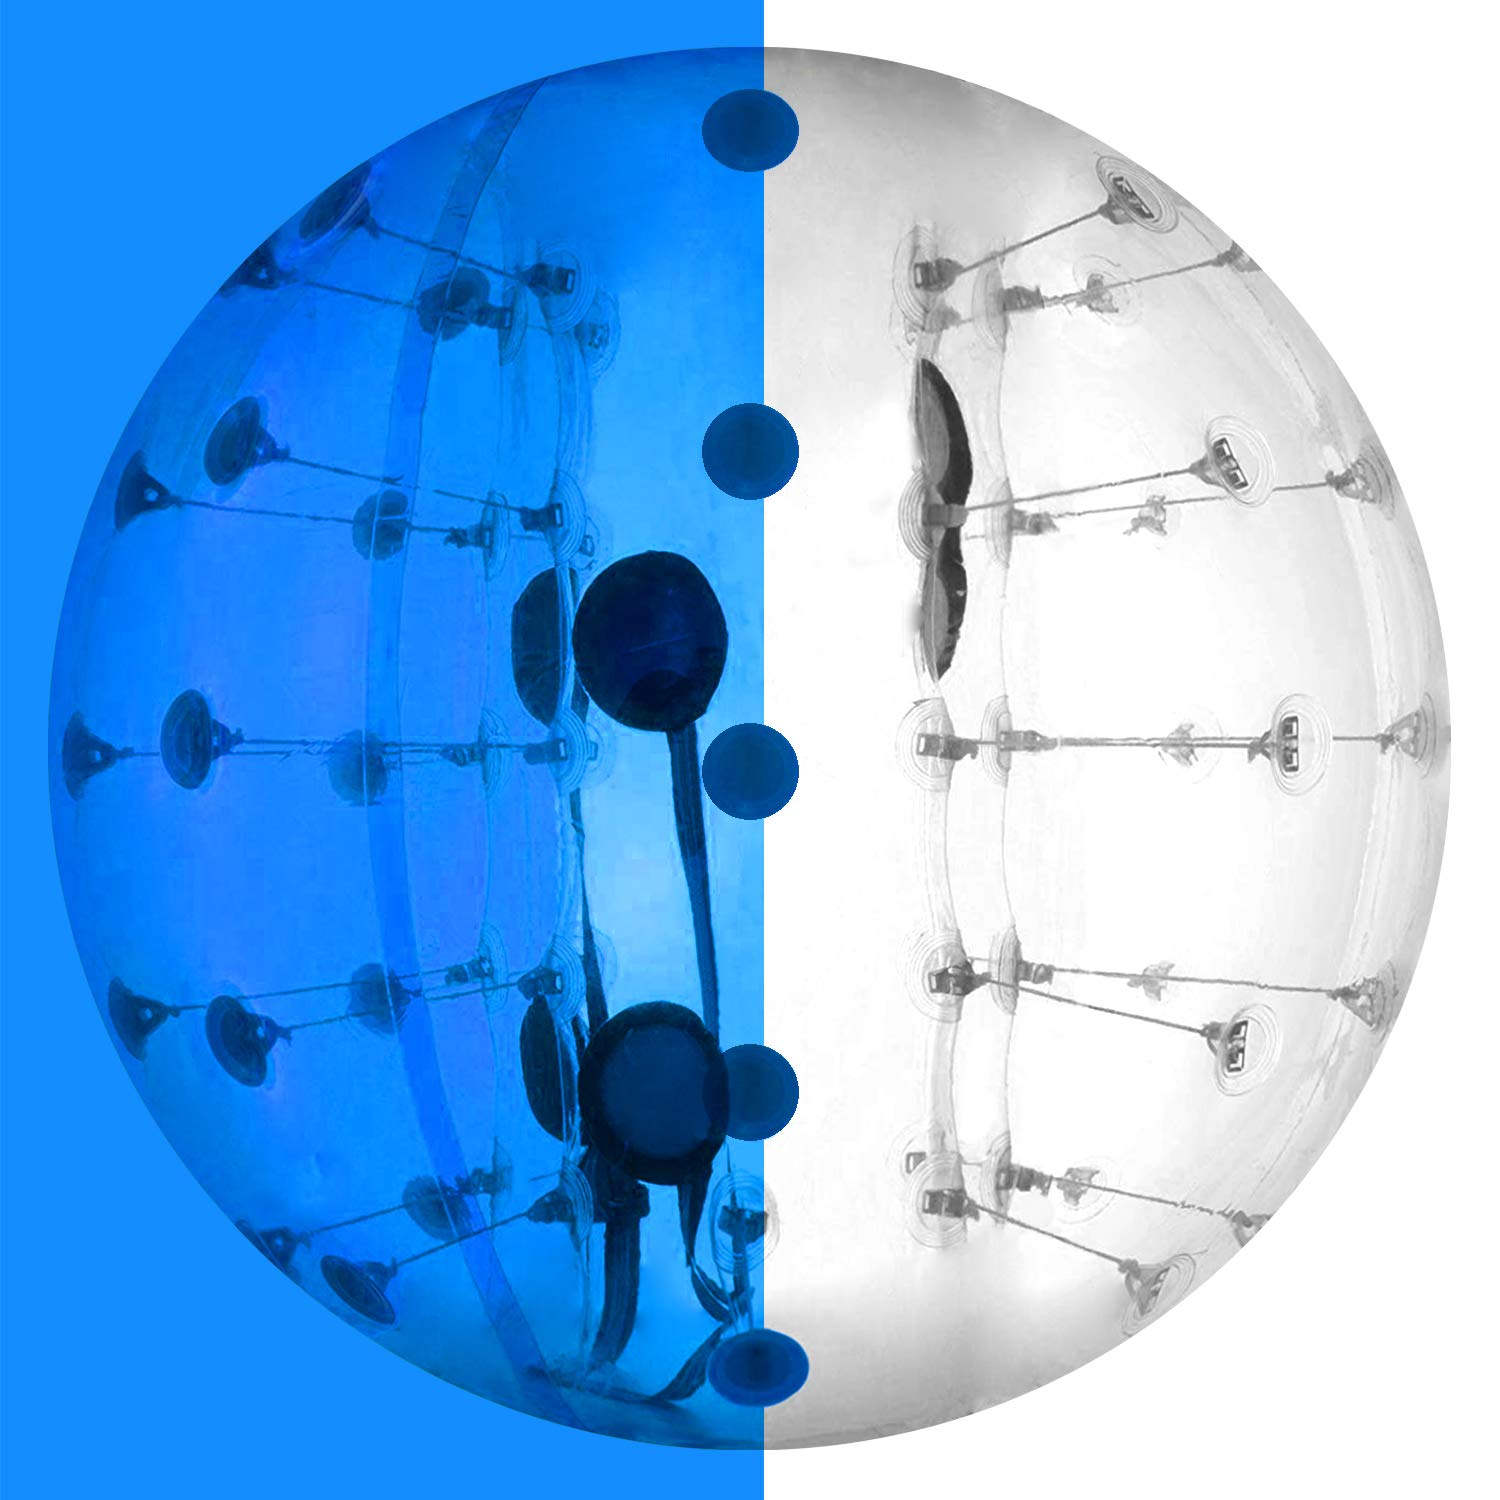 Happybuy Inflatable Bumper Ball 1.2M/4ft 1.5M/5ft Diameter Bubble Soccer Ball Blow Up Toy in 5 Min Inflatable Bumper Bubble Balls for Adults or Child (Half Blue, 5ft) by Happybuy (Image #1)